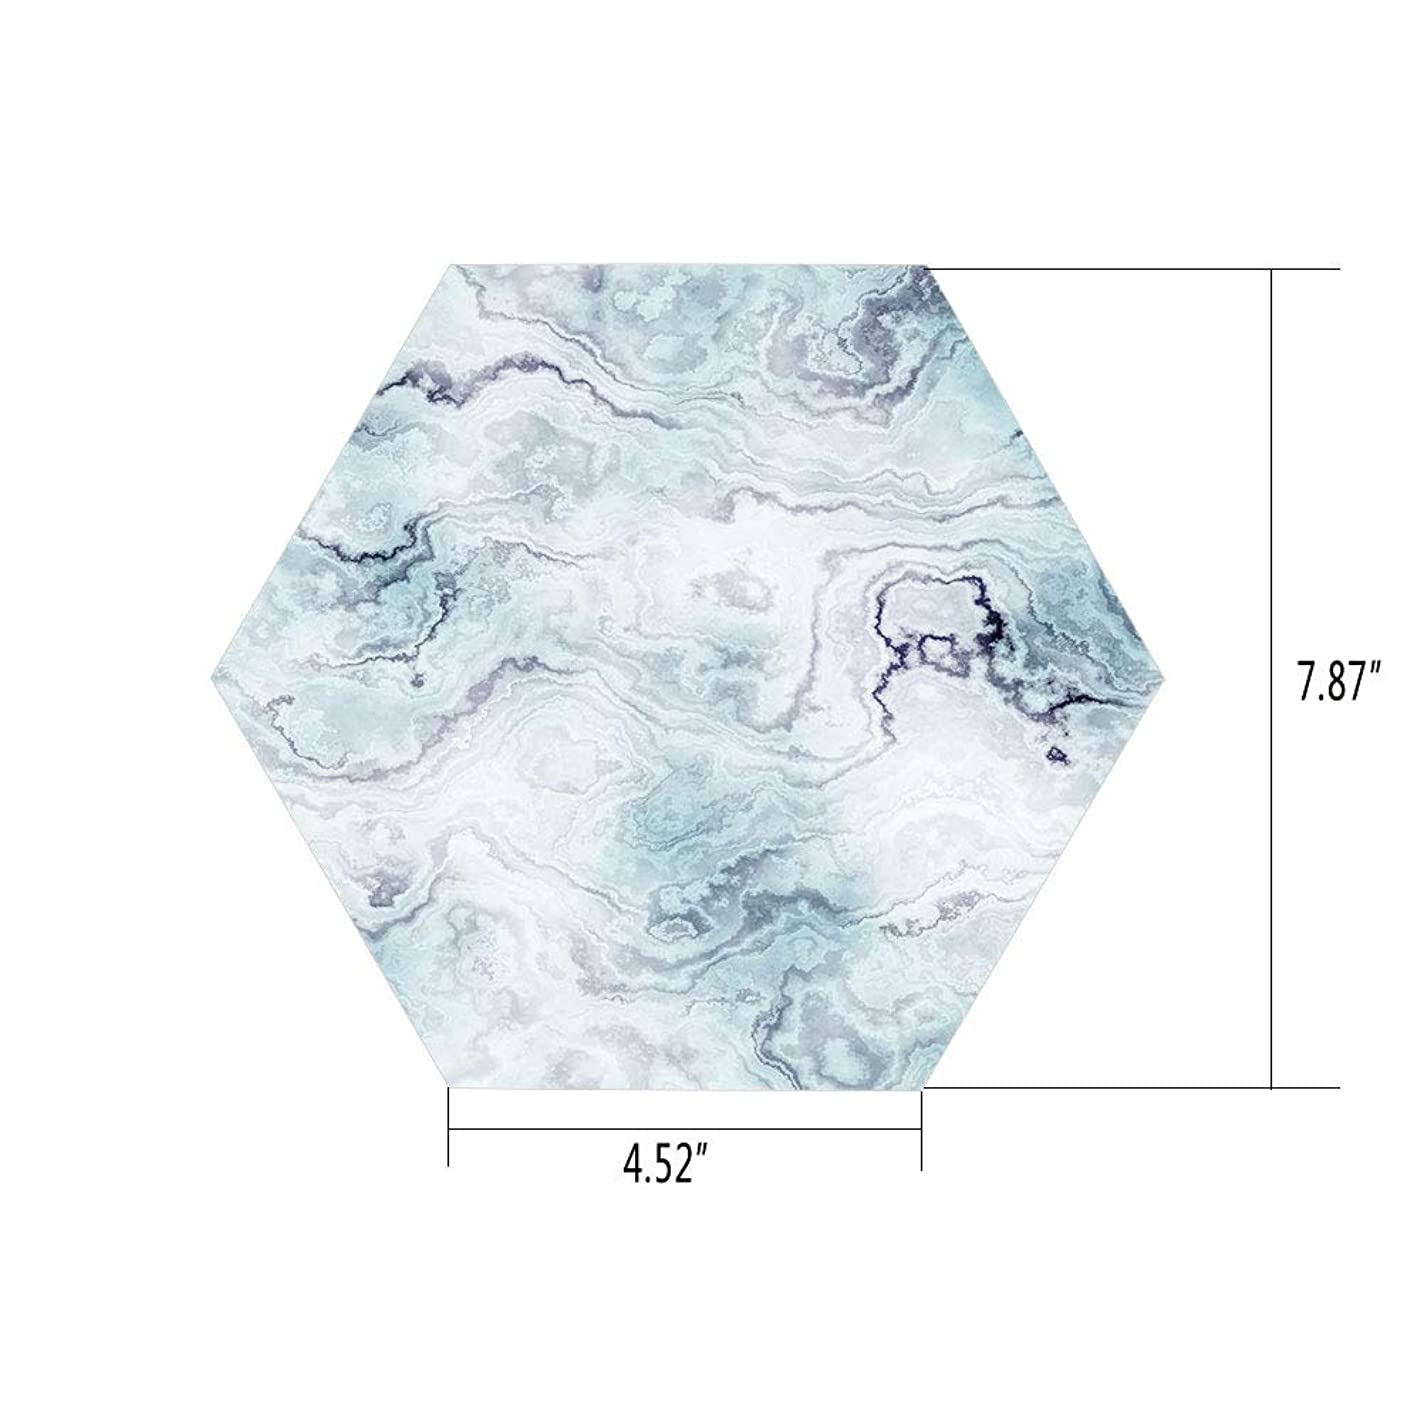 iPrint Hexagon Wall Sticker,Mural Decal,Marble,Soft Pastel Toned Abstract Hazy Wavy Pattern with Ottoman Influences Image Decorative,Light Blue Grey Mint,for Home Decor 4.52x7.87 10 Pcs/Set